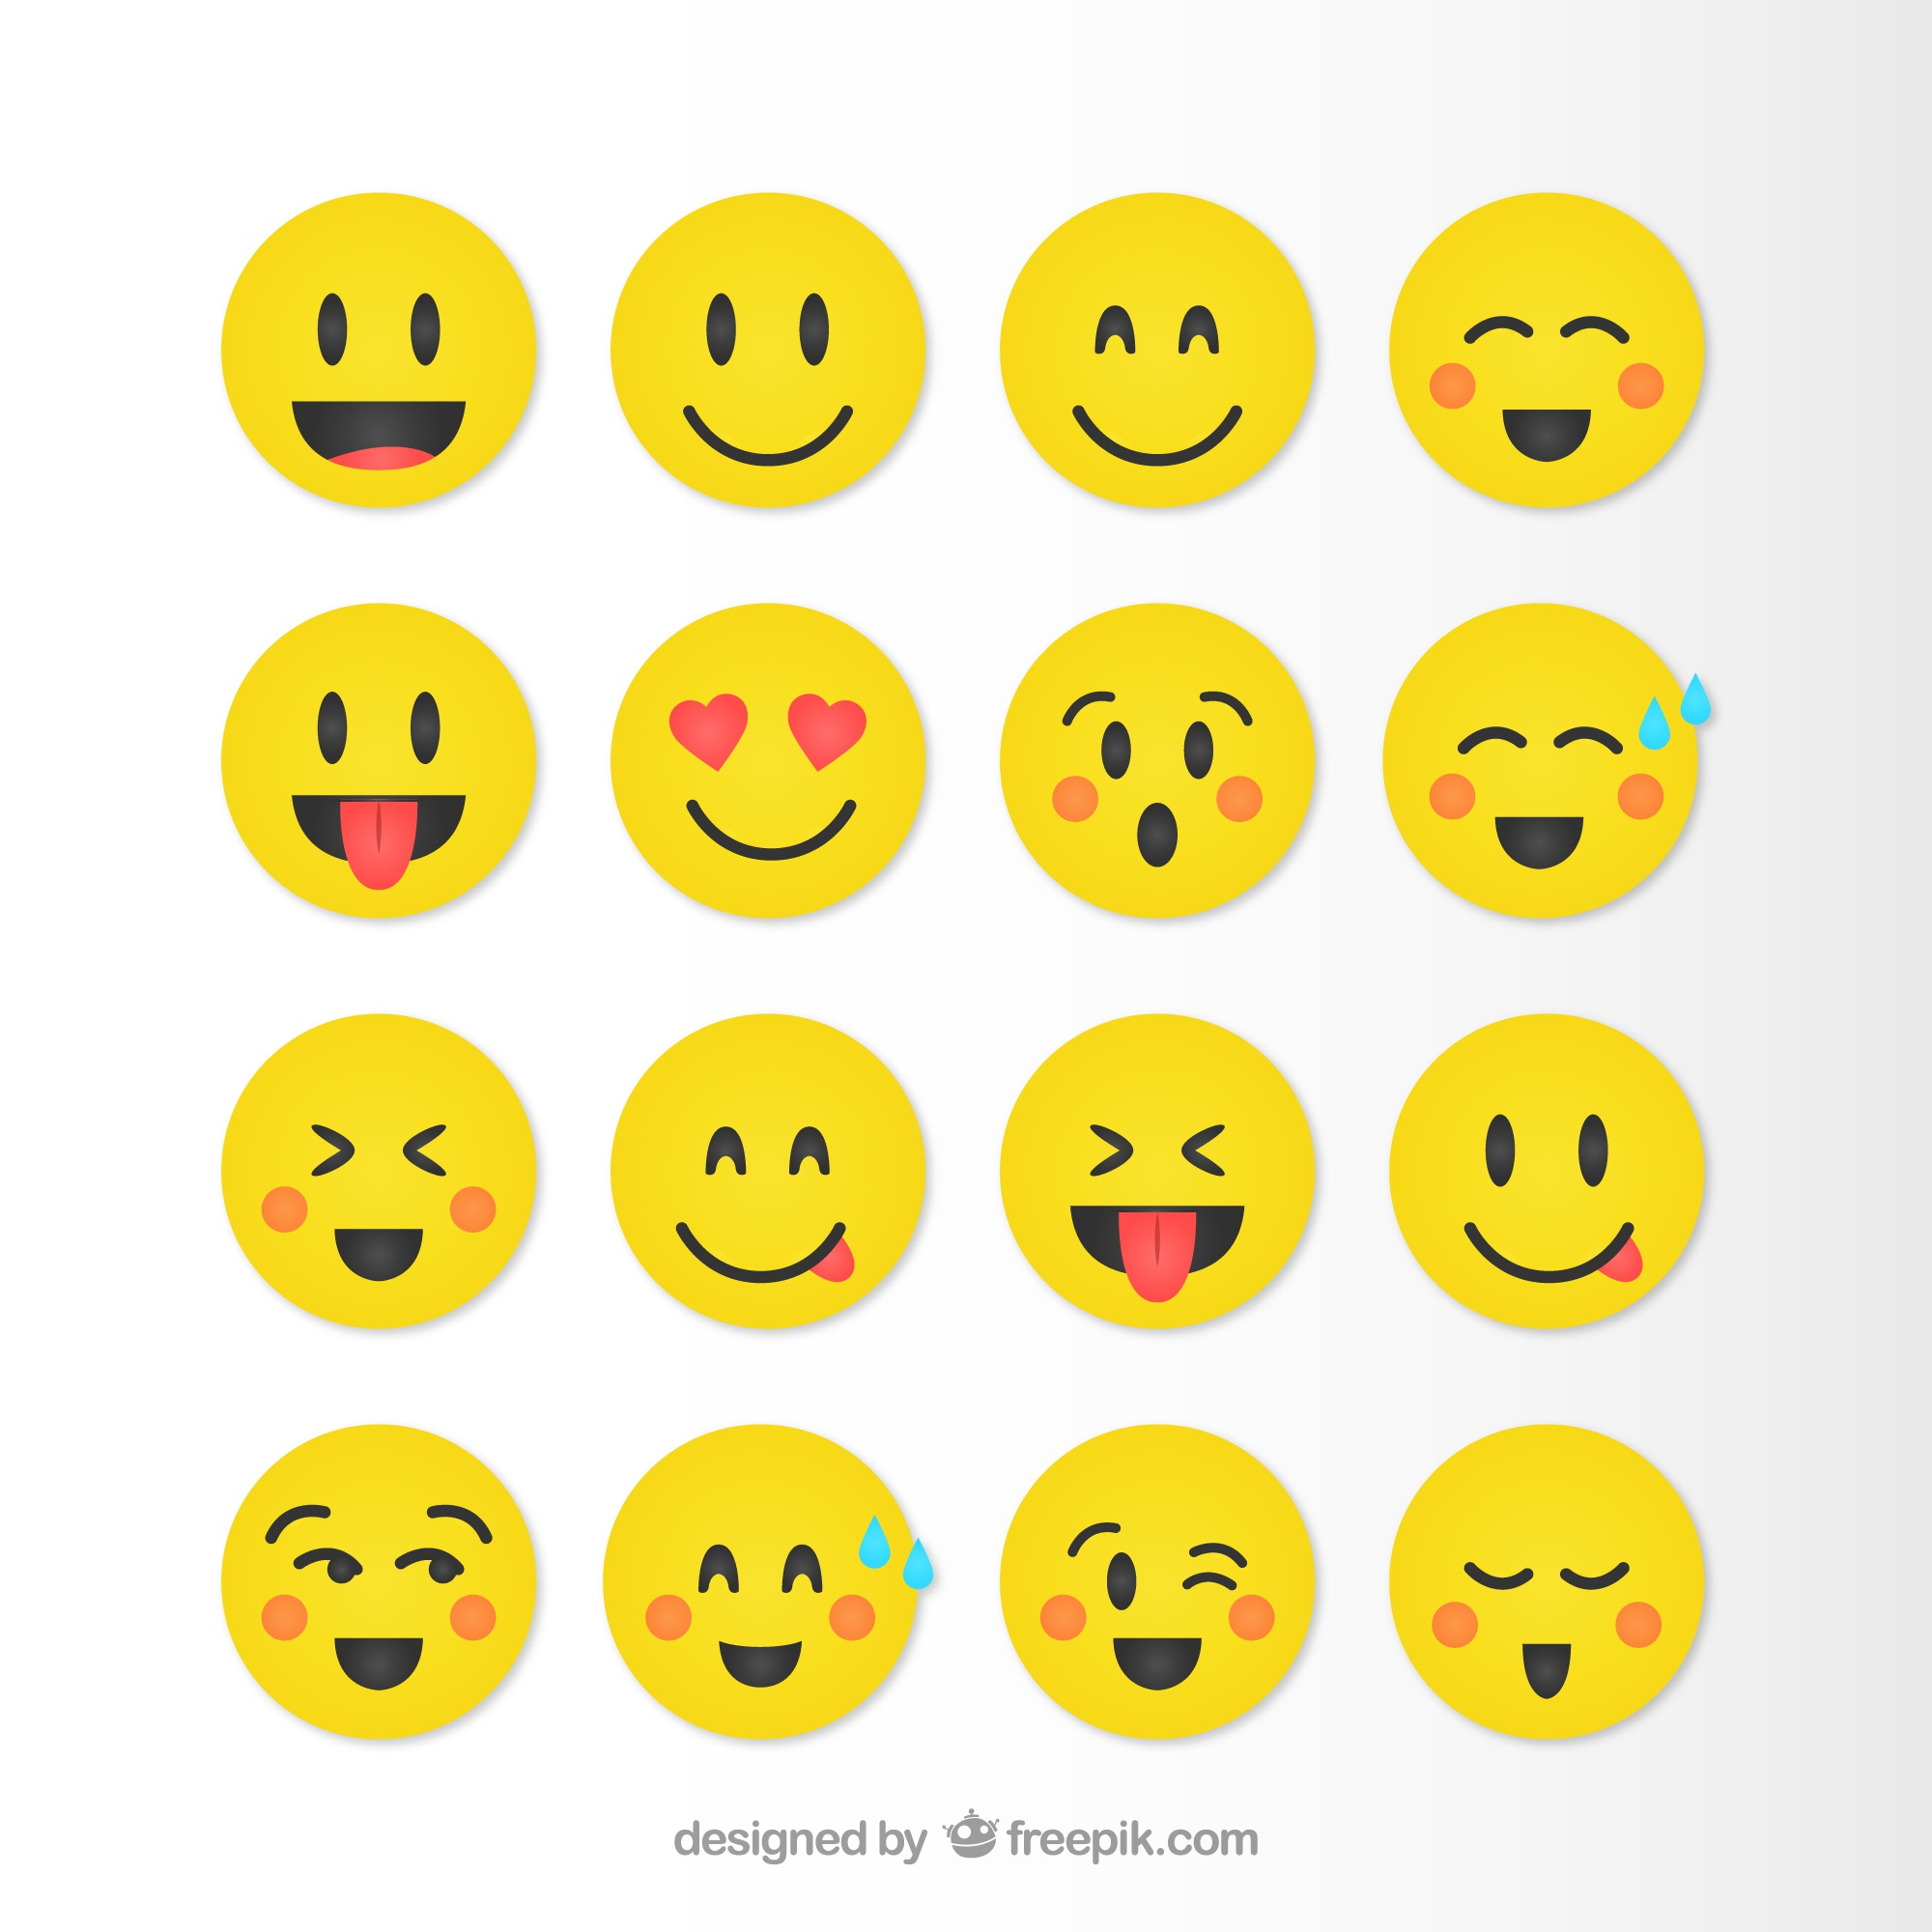 Funny smileys collection in yellow color